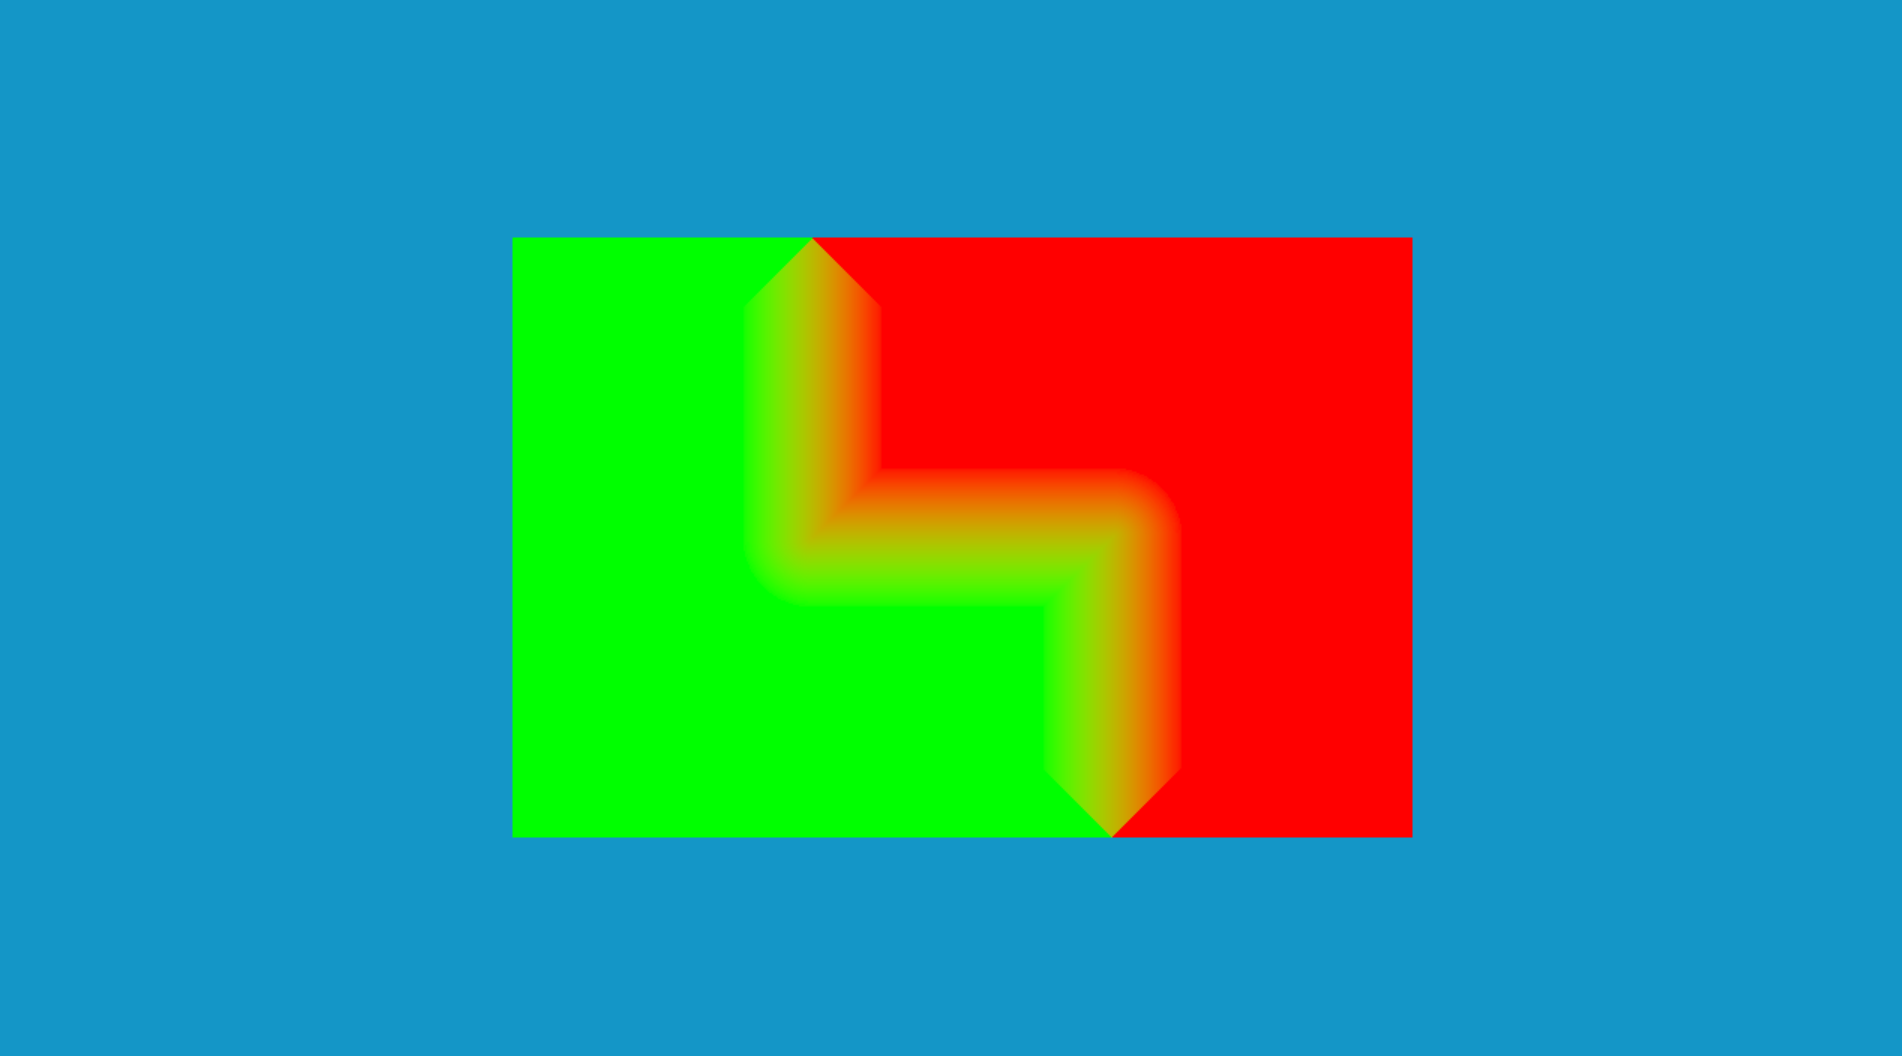 green_blend_to_red.png